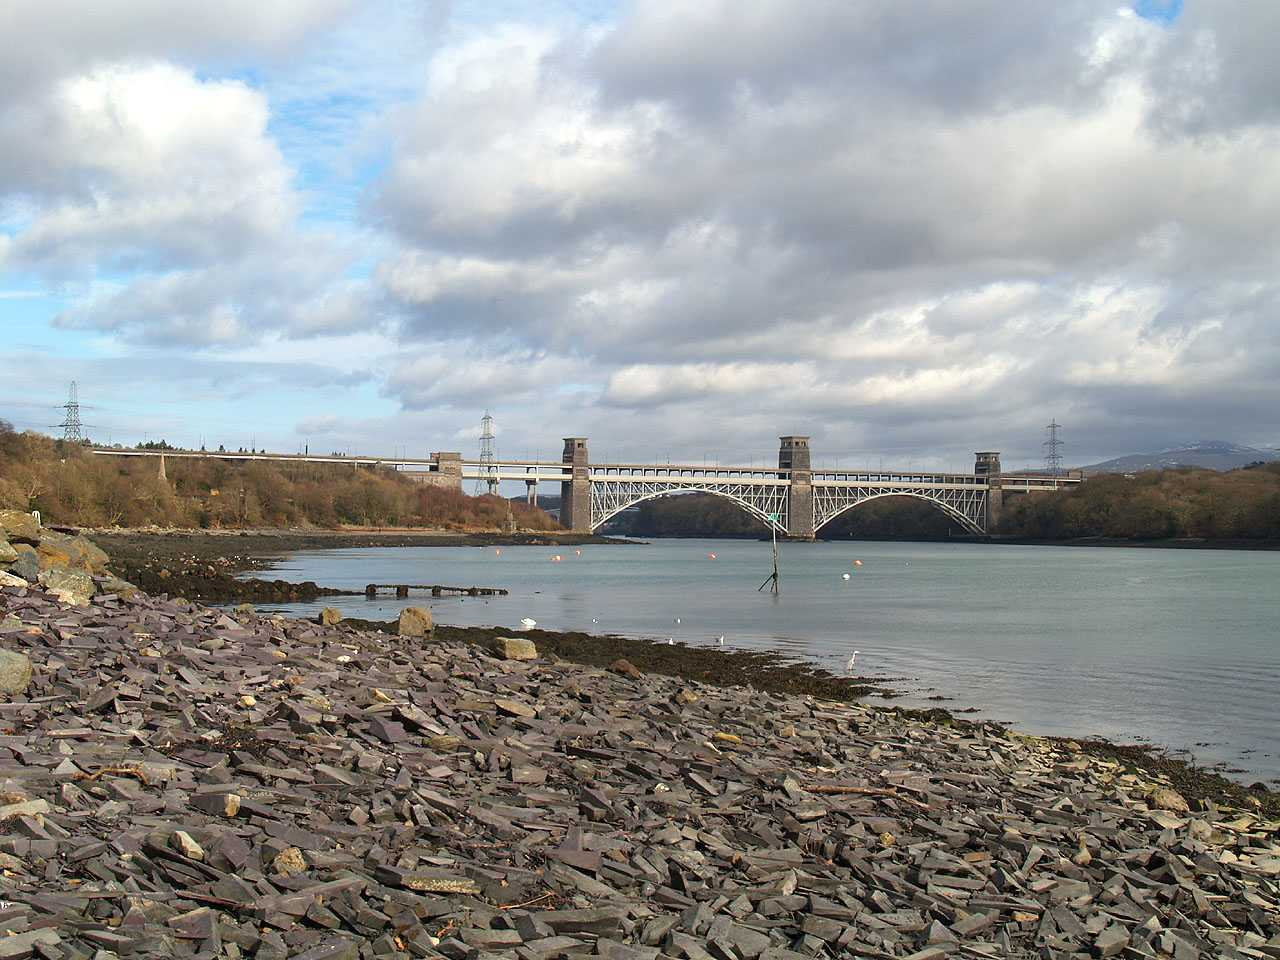 Llanfair Pwllgwyngyll, Pwll Fanogl, view towards Menai Tubular Bridge showing the waste slate